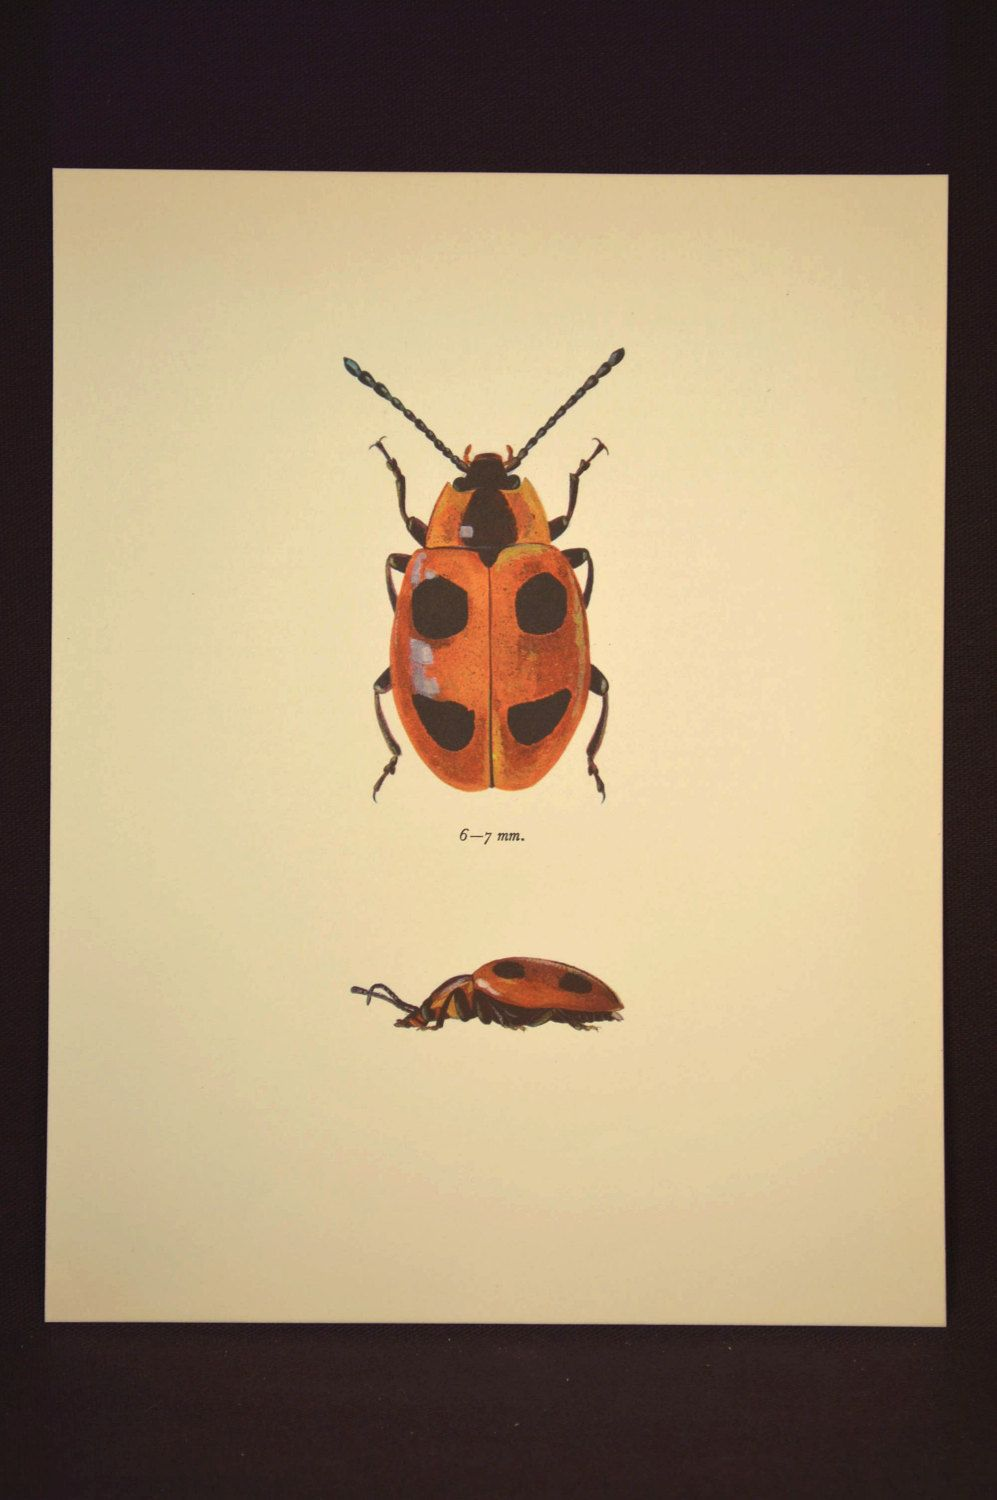 Insect Wall Decor Beetle Print Bug Decor Art Nature Vintage | Nature ...